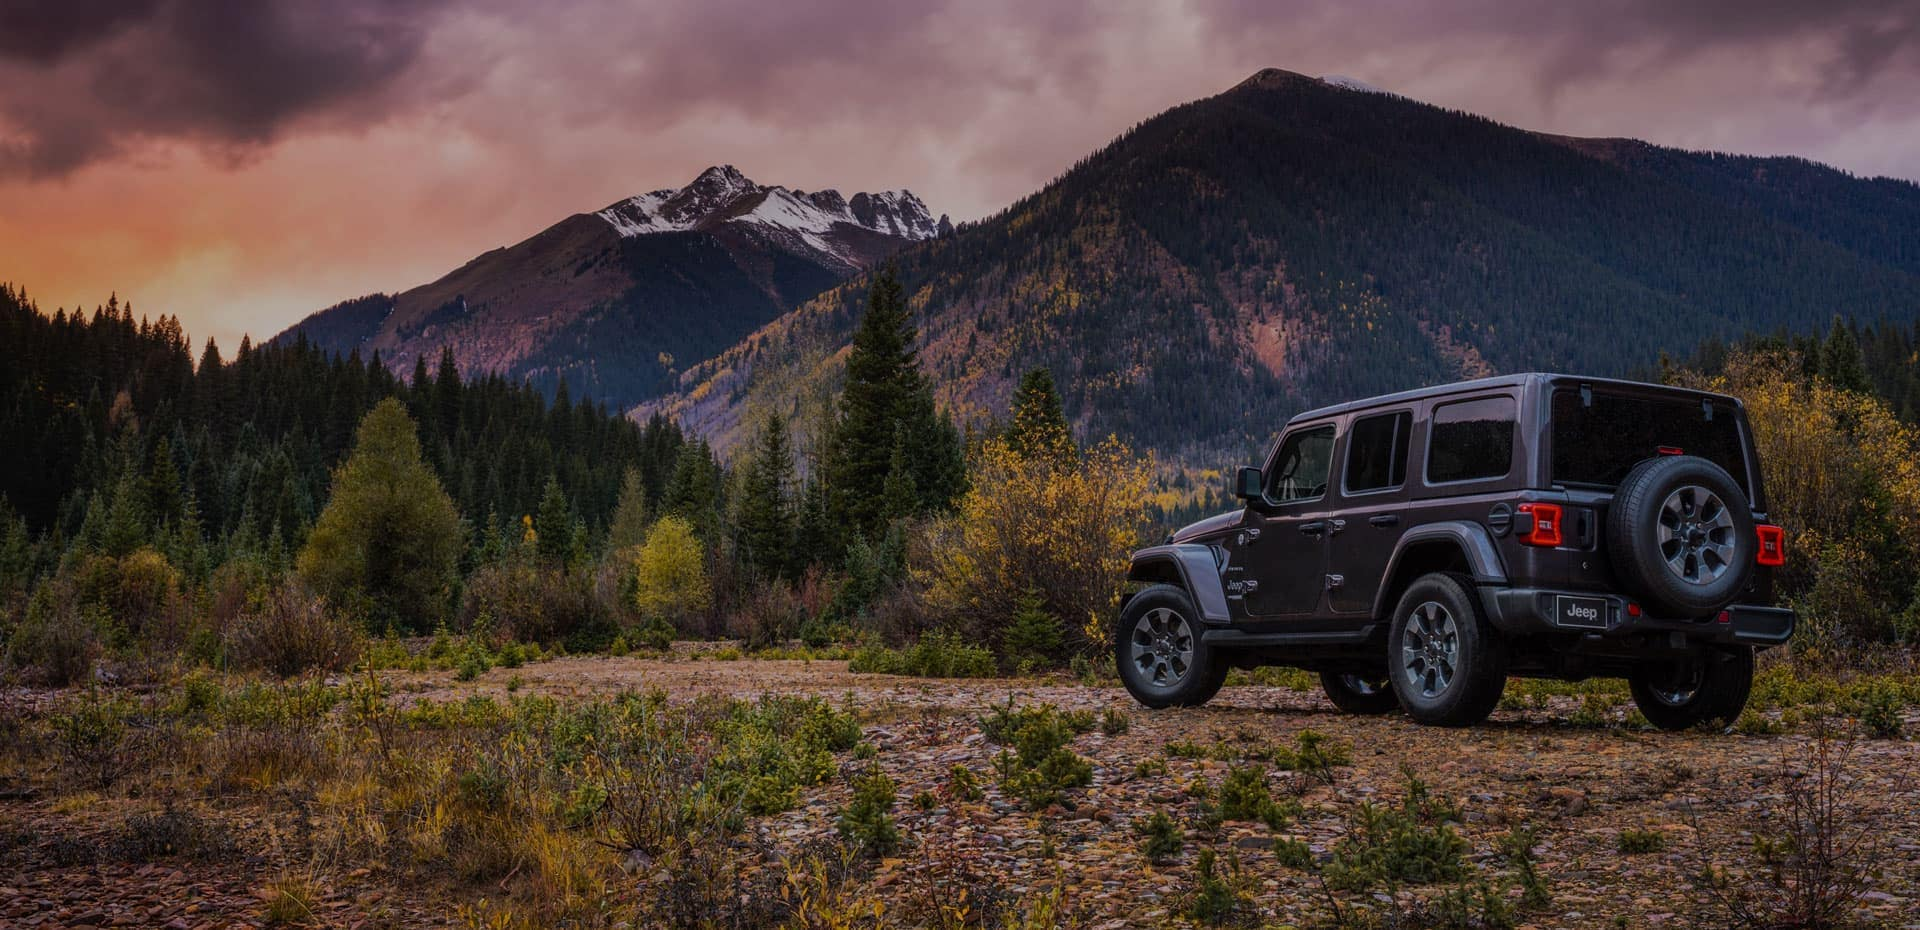 Jeep Wrangler sitting in front of the mountains